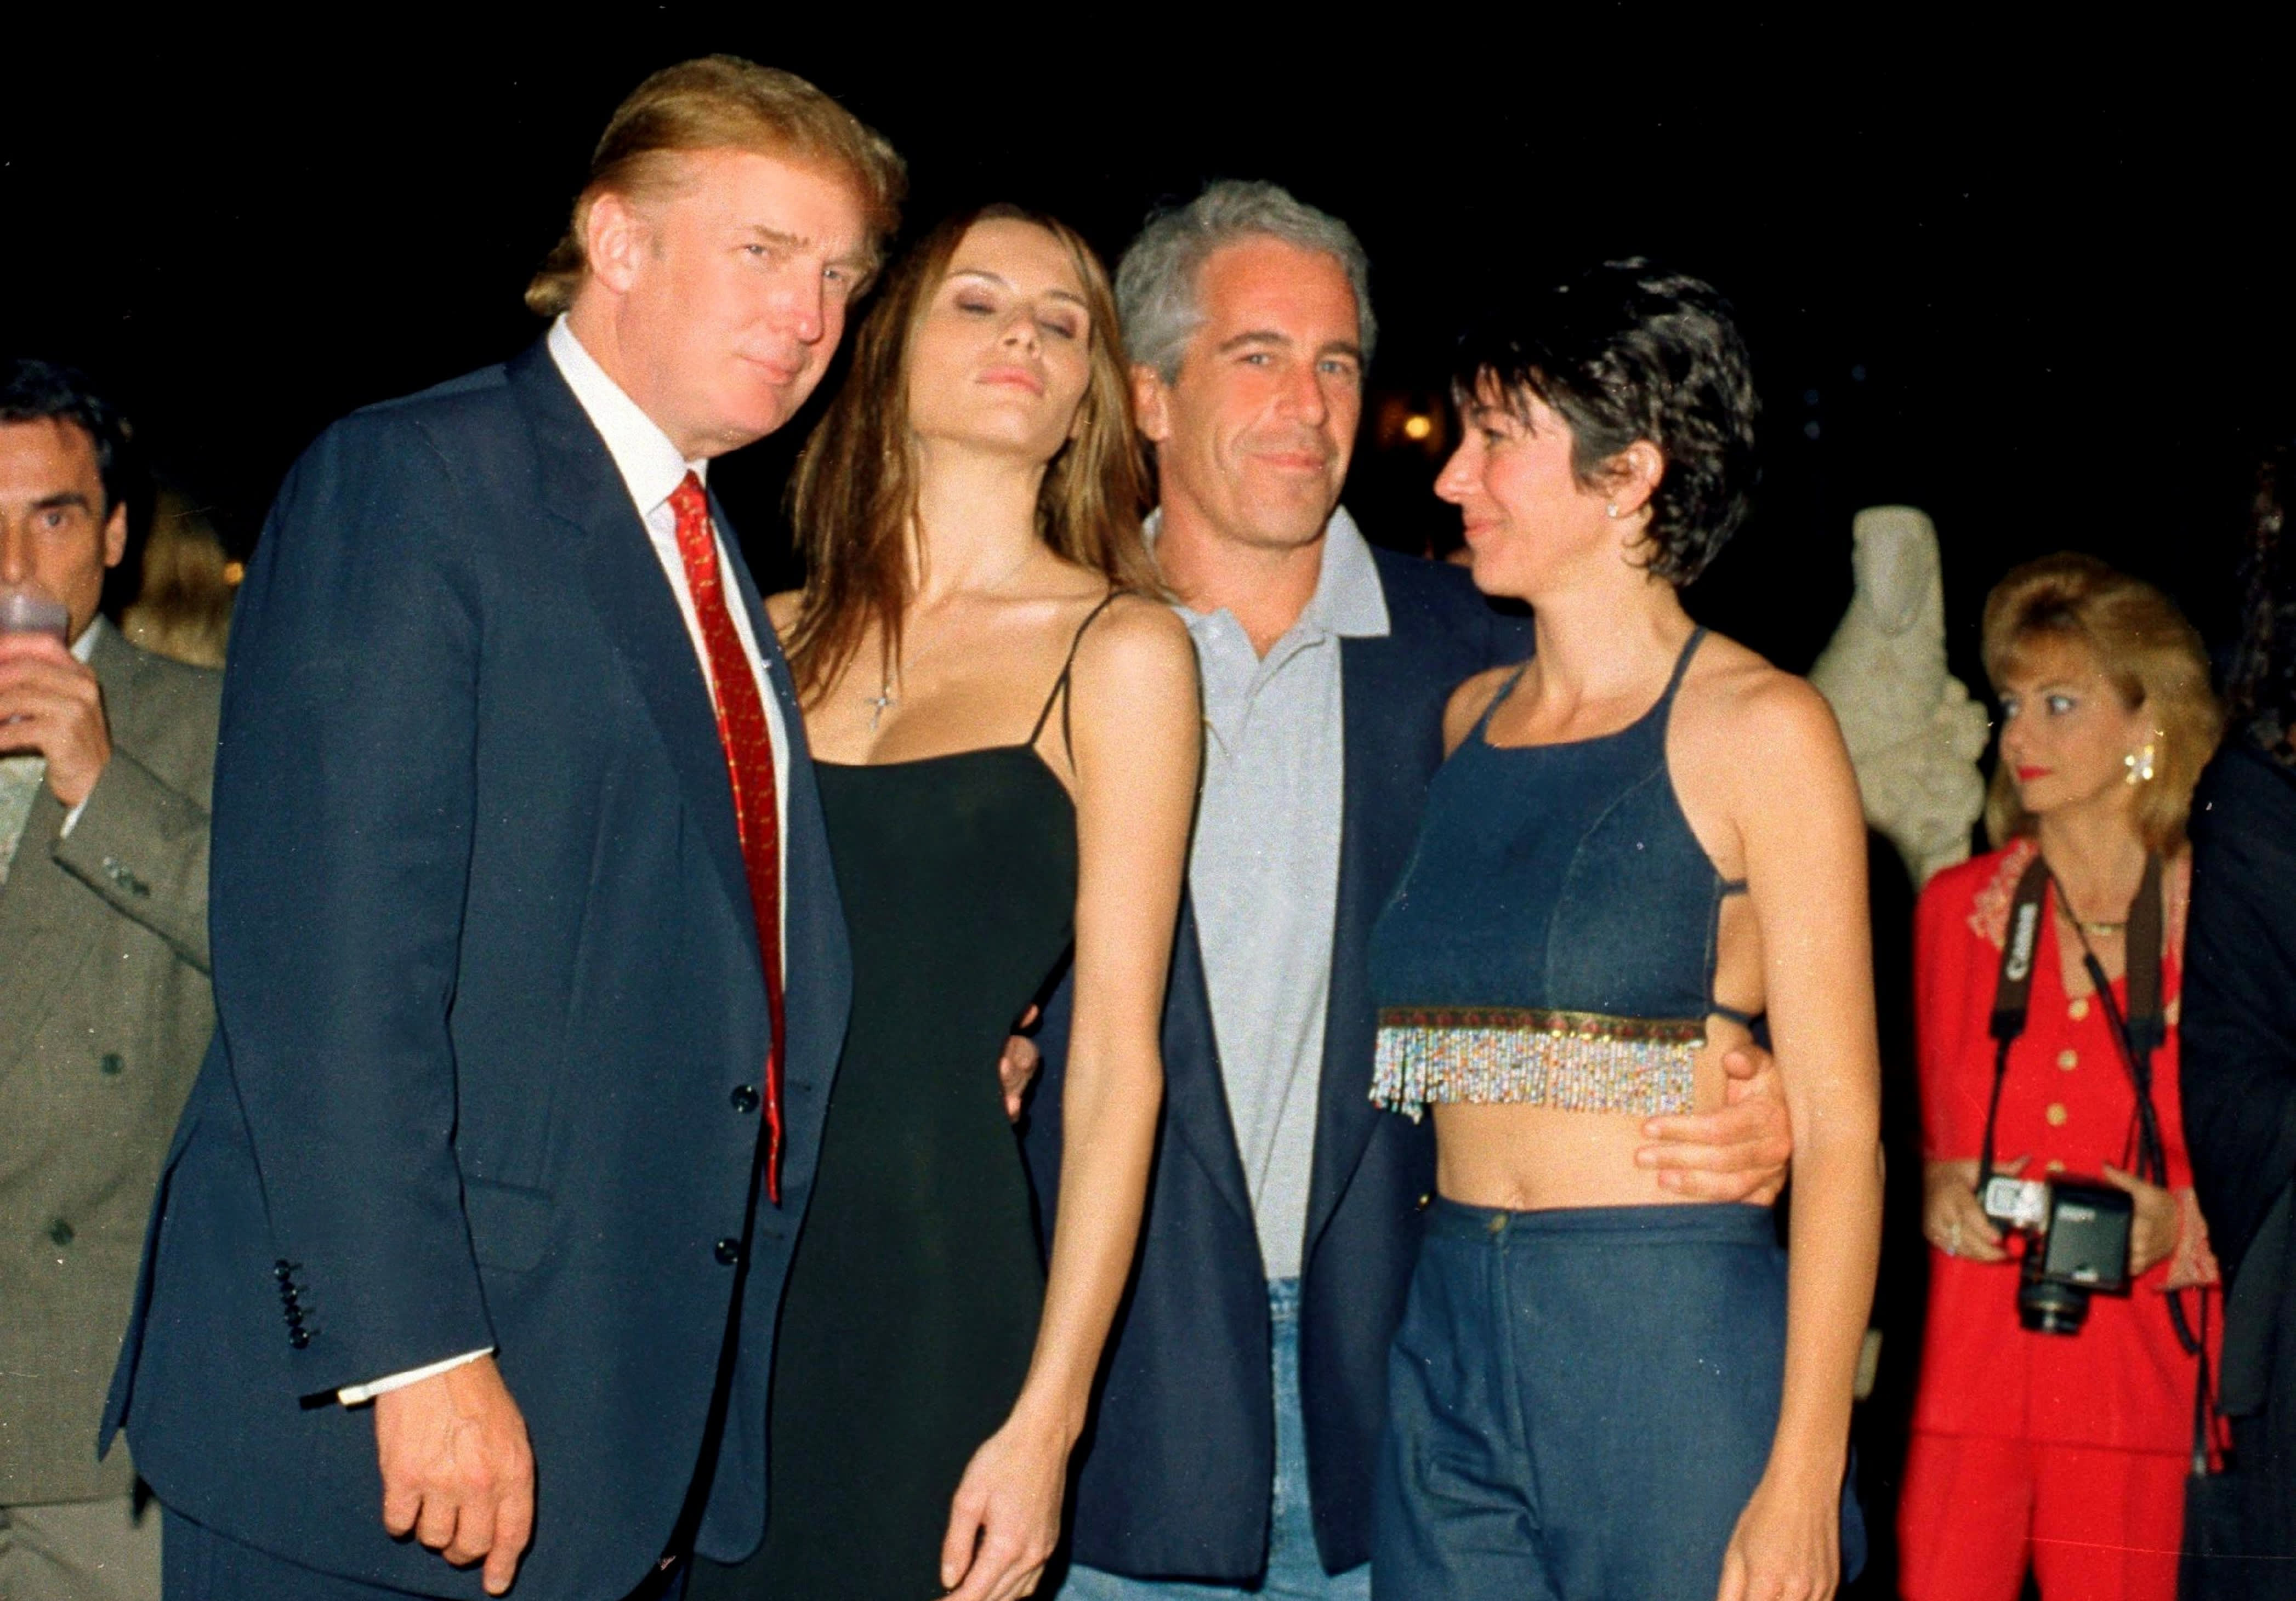 Trump retweets conspiracy theory about Bill Clinton after Jeffrey Epstein's death by suicide